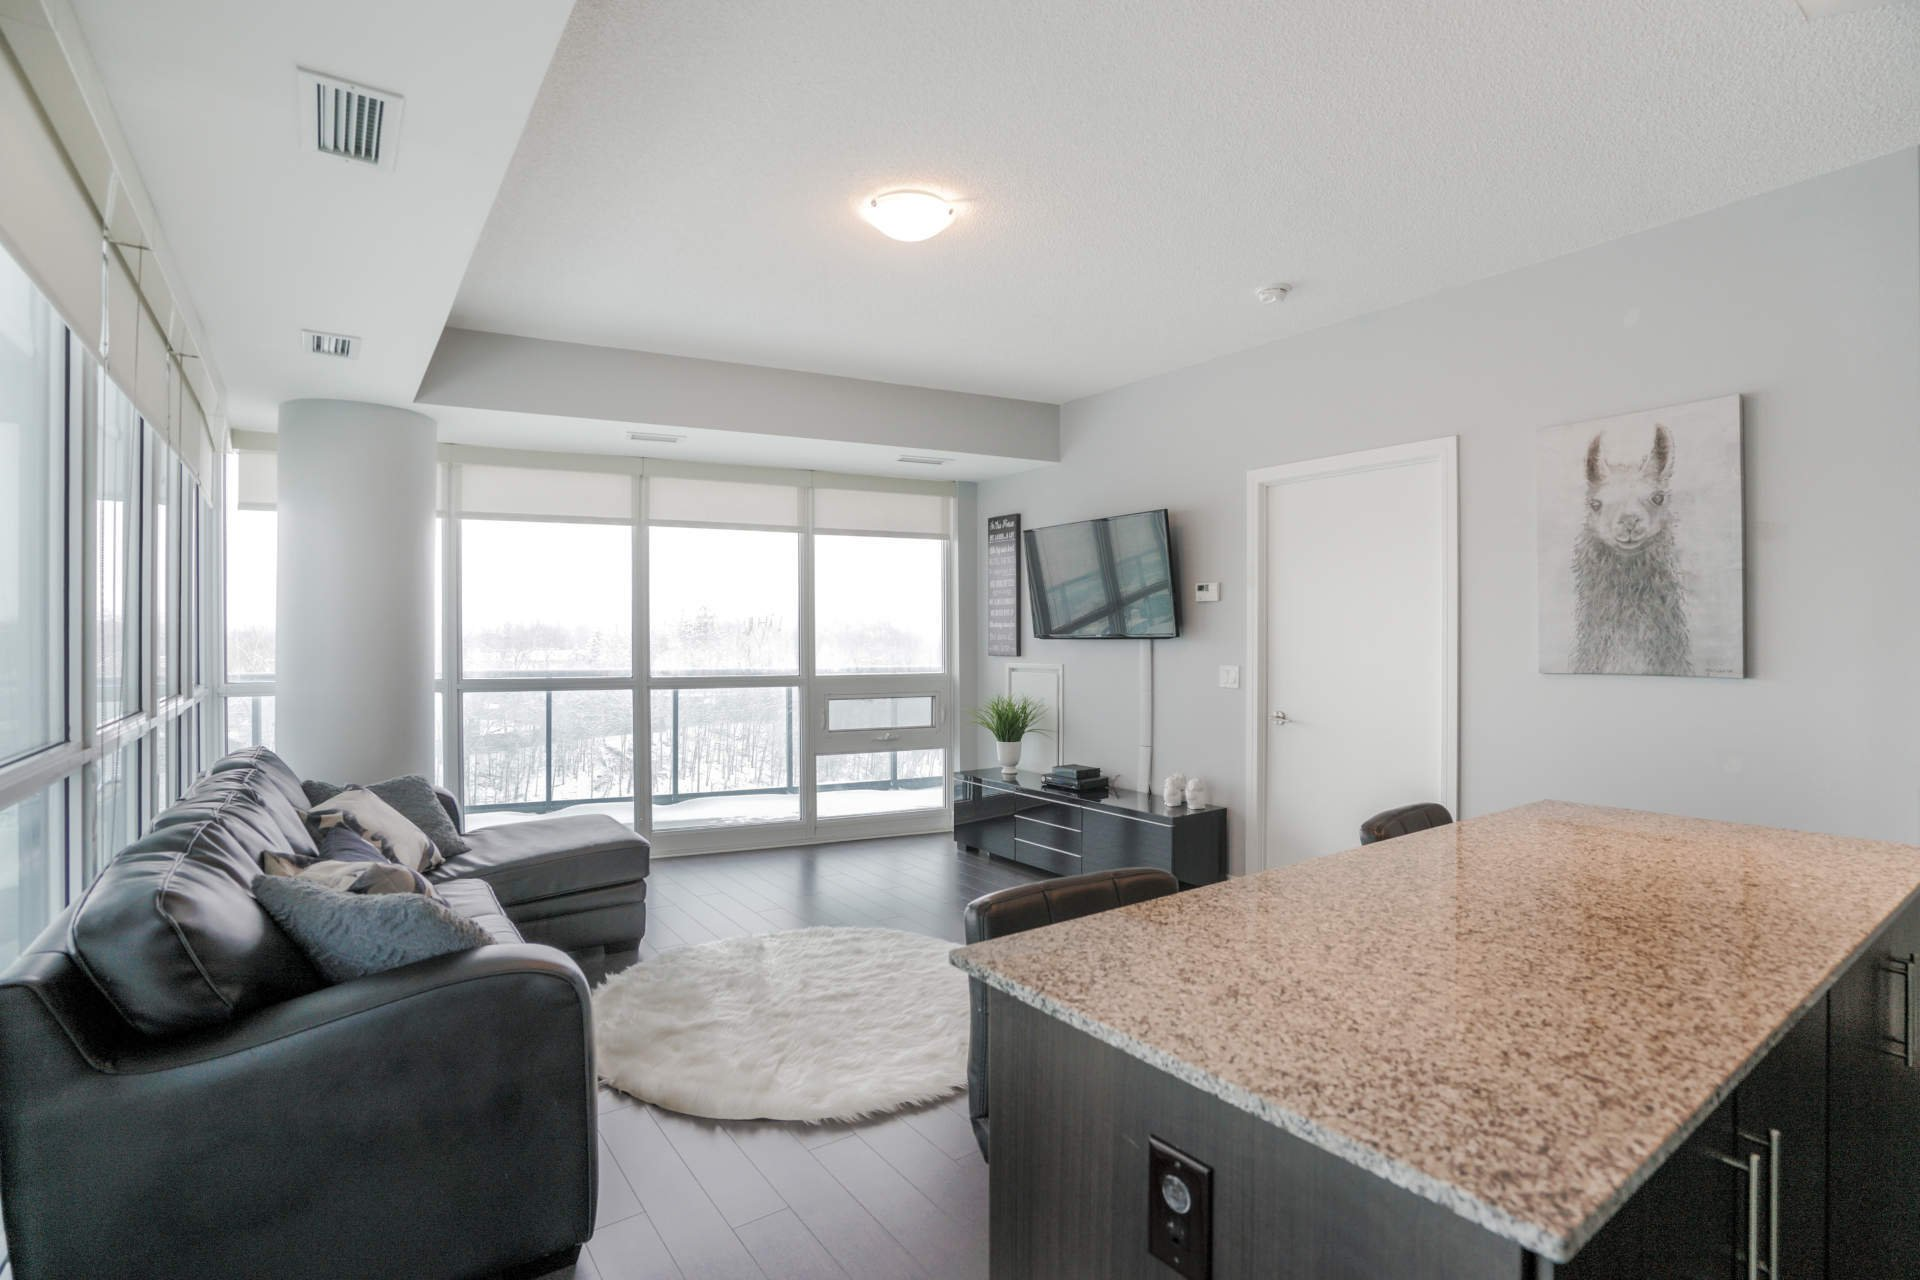 Photo 3: Photos: 401 35 Brian Peck Crescent in Toronto: Leaside Condo for sale (Toronto C11)  : MLS®# C4646982